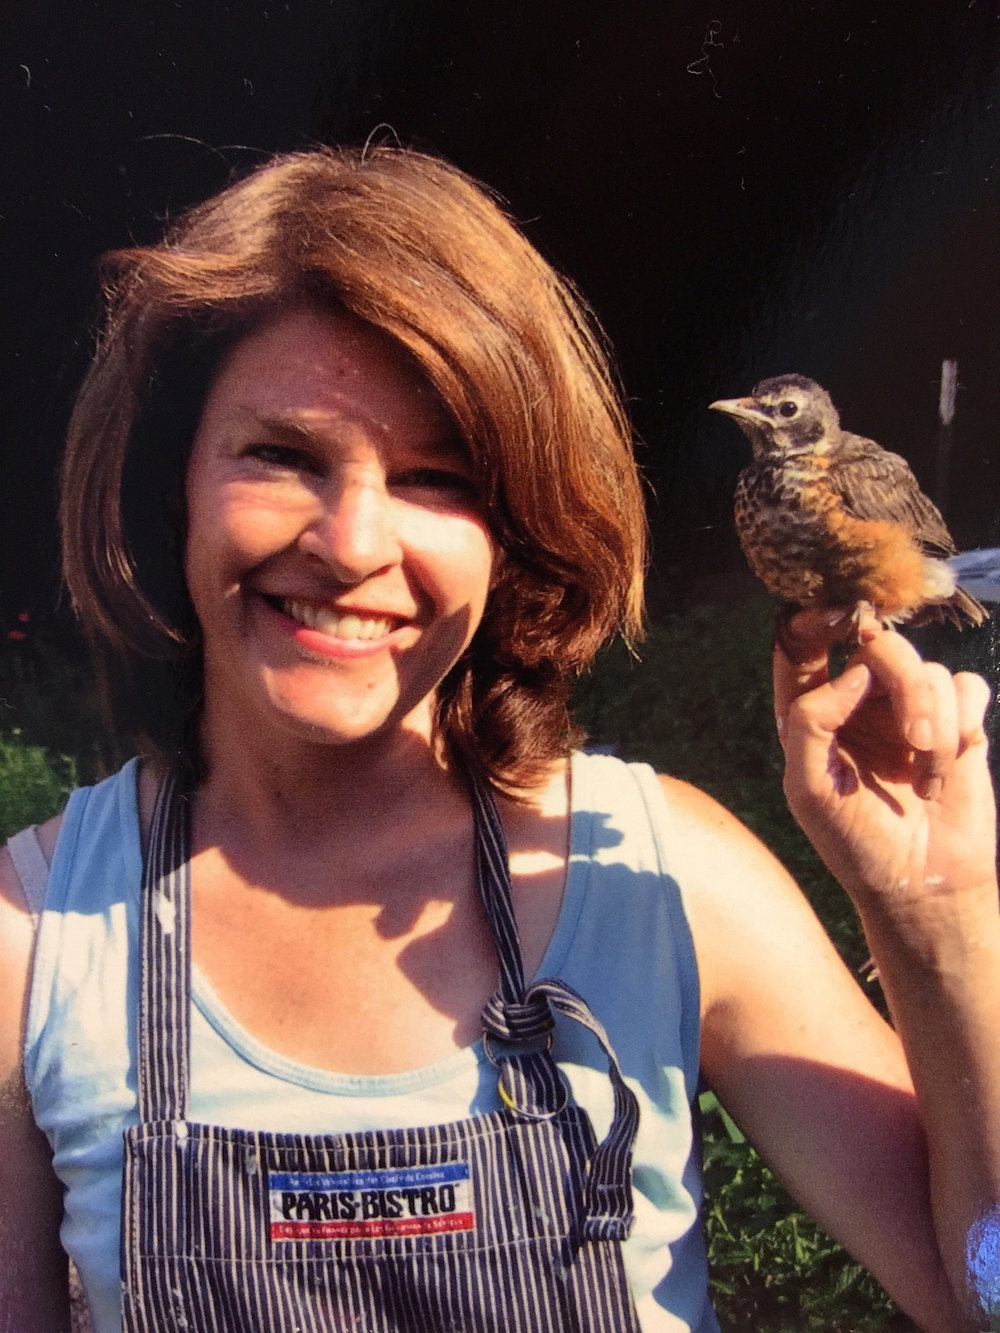 Me with Bird, a robin I raised when it fell from a nest. I taught him how to dig for worms and when you put your hand in the air, he would fly to you. It migrated about a month after this photo was taken.